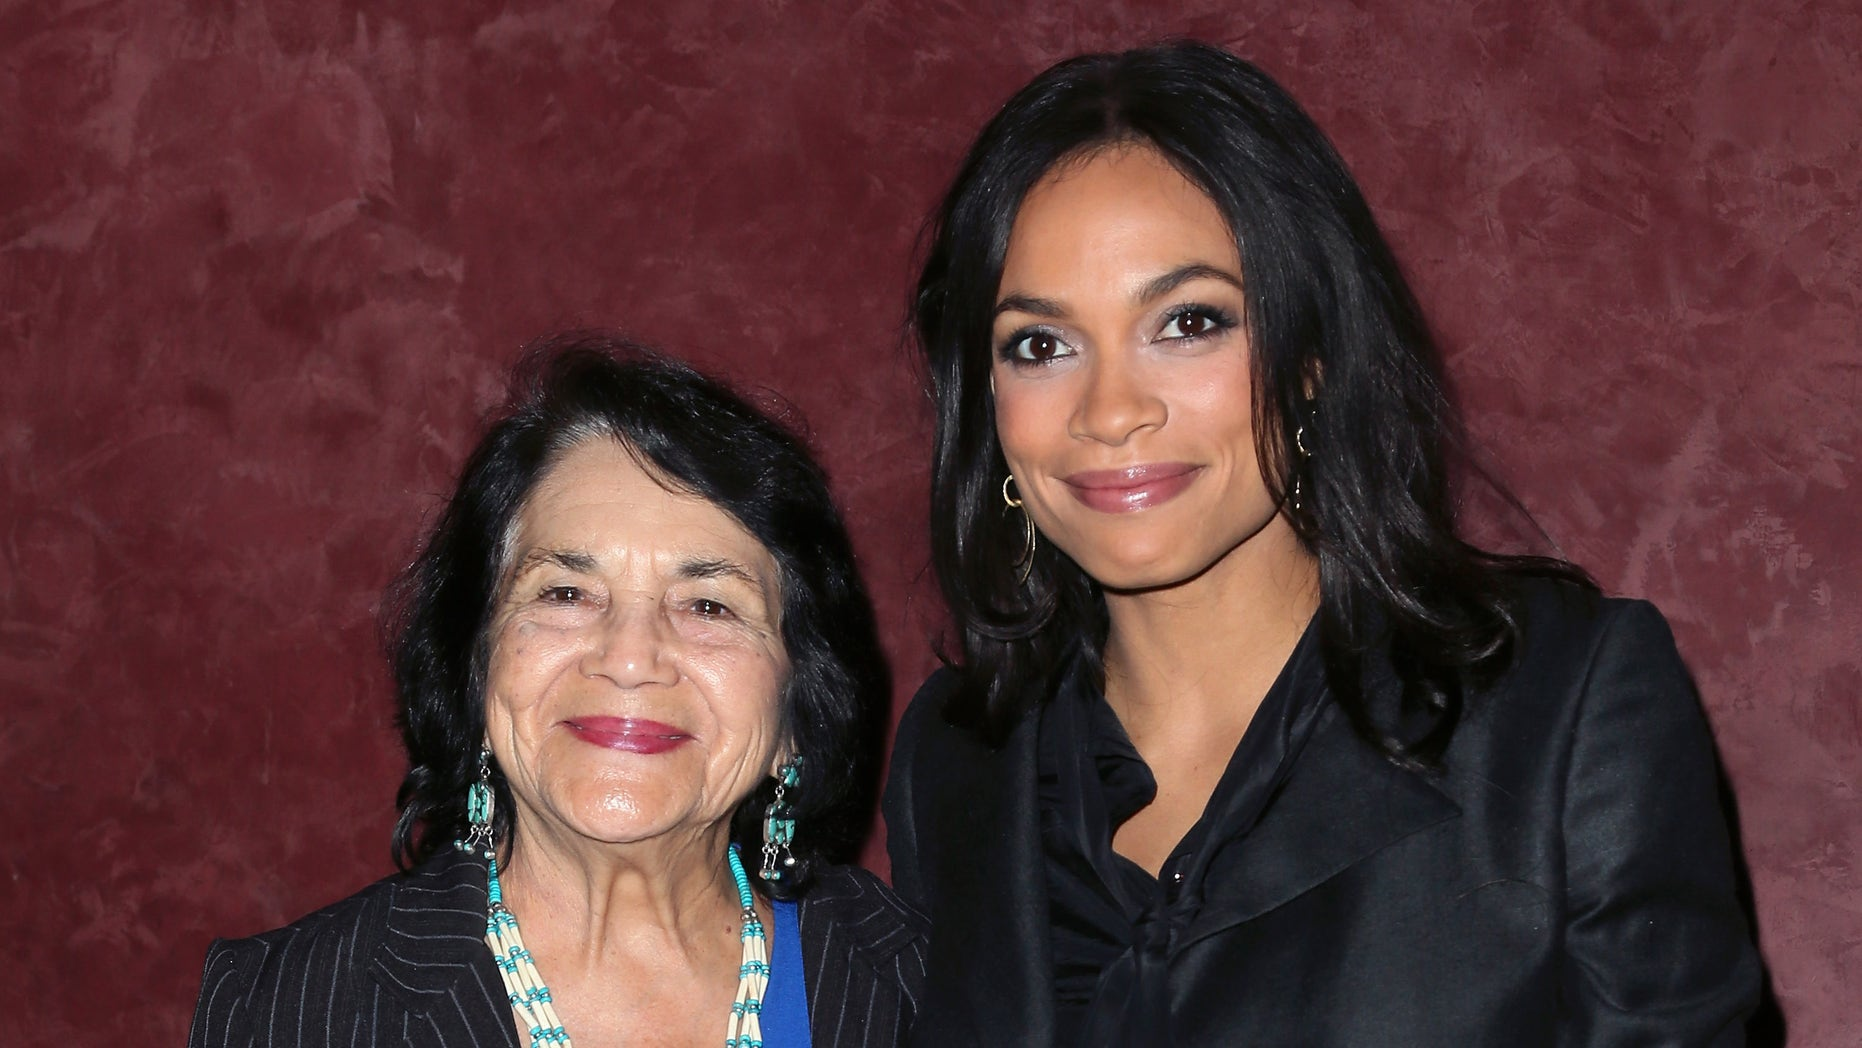 """LOS ANGELES, CA - MARCH 28:  Labor leader and civil rights activist Dolores Huerta (L) and actress Rosario Dawson, who plays Huerta in the film, attend a screening of """"Cesar Chavez"""" at Landmark Theatres on March 28, 2014 in Los Angeles, California.  (Photo by David Livingston/Getty Images)"""